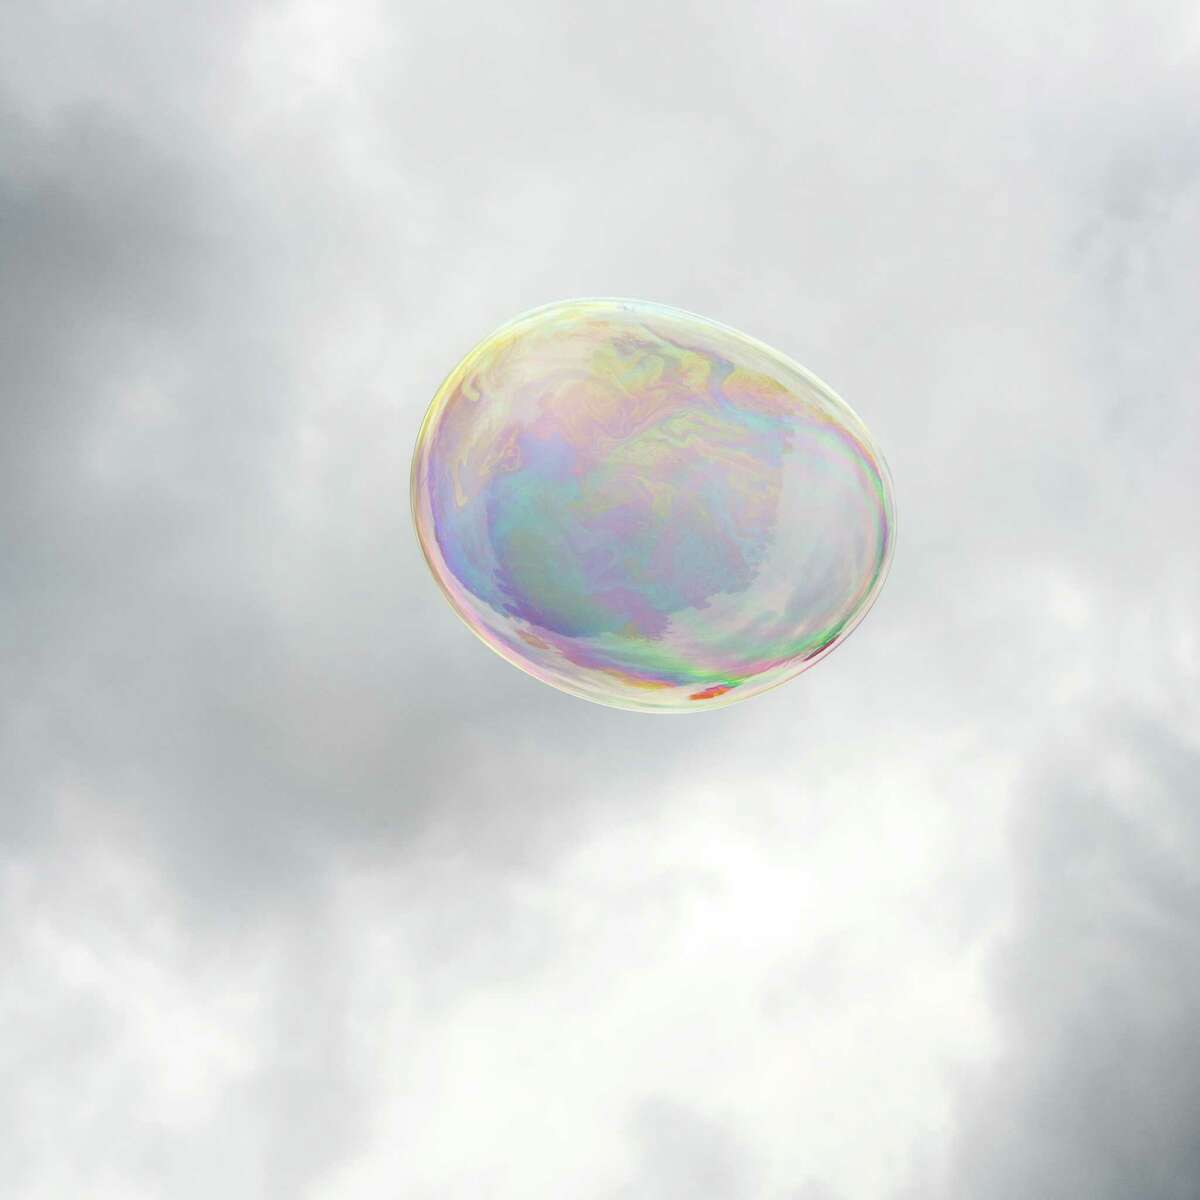 Bubble, Stuart Allen's Luminaria 2015 project, is a looped, slow-motion video documenting the brief life of a bubble.